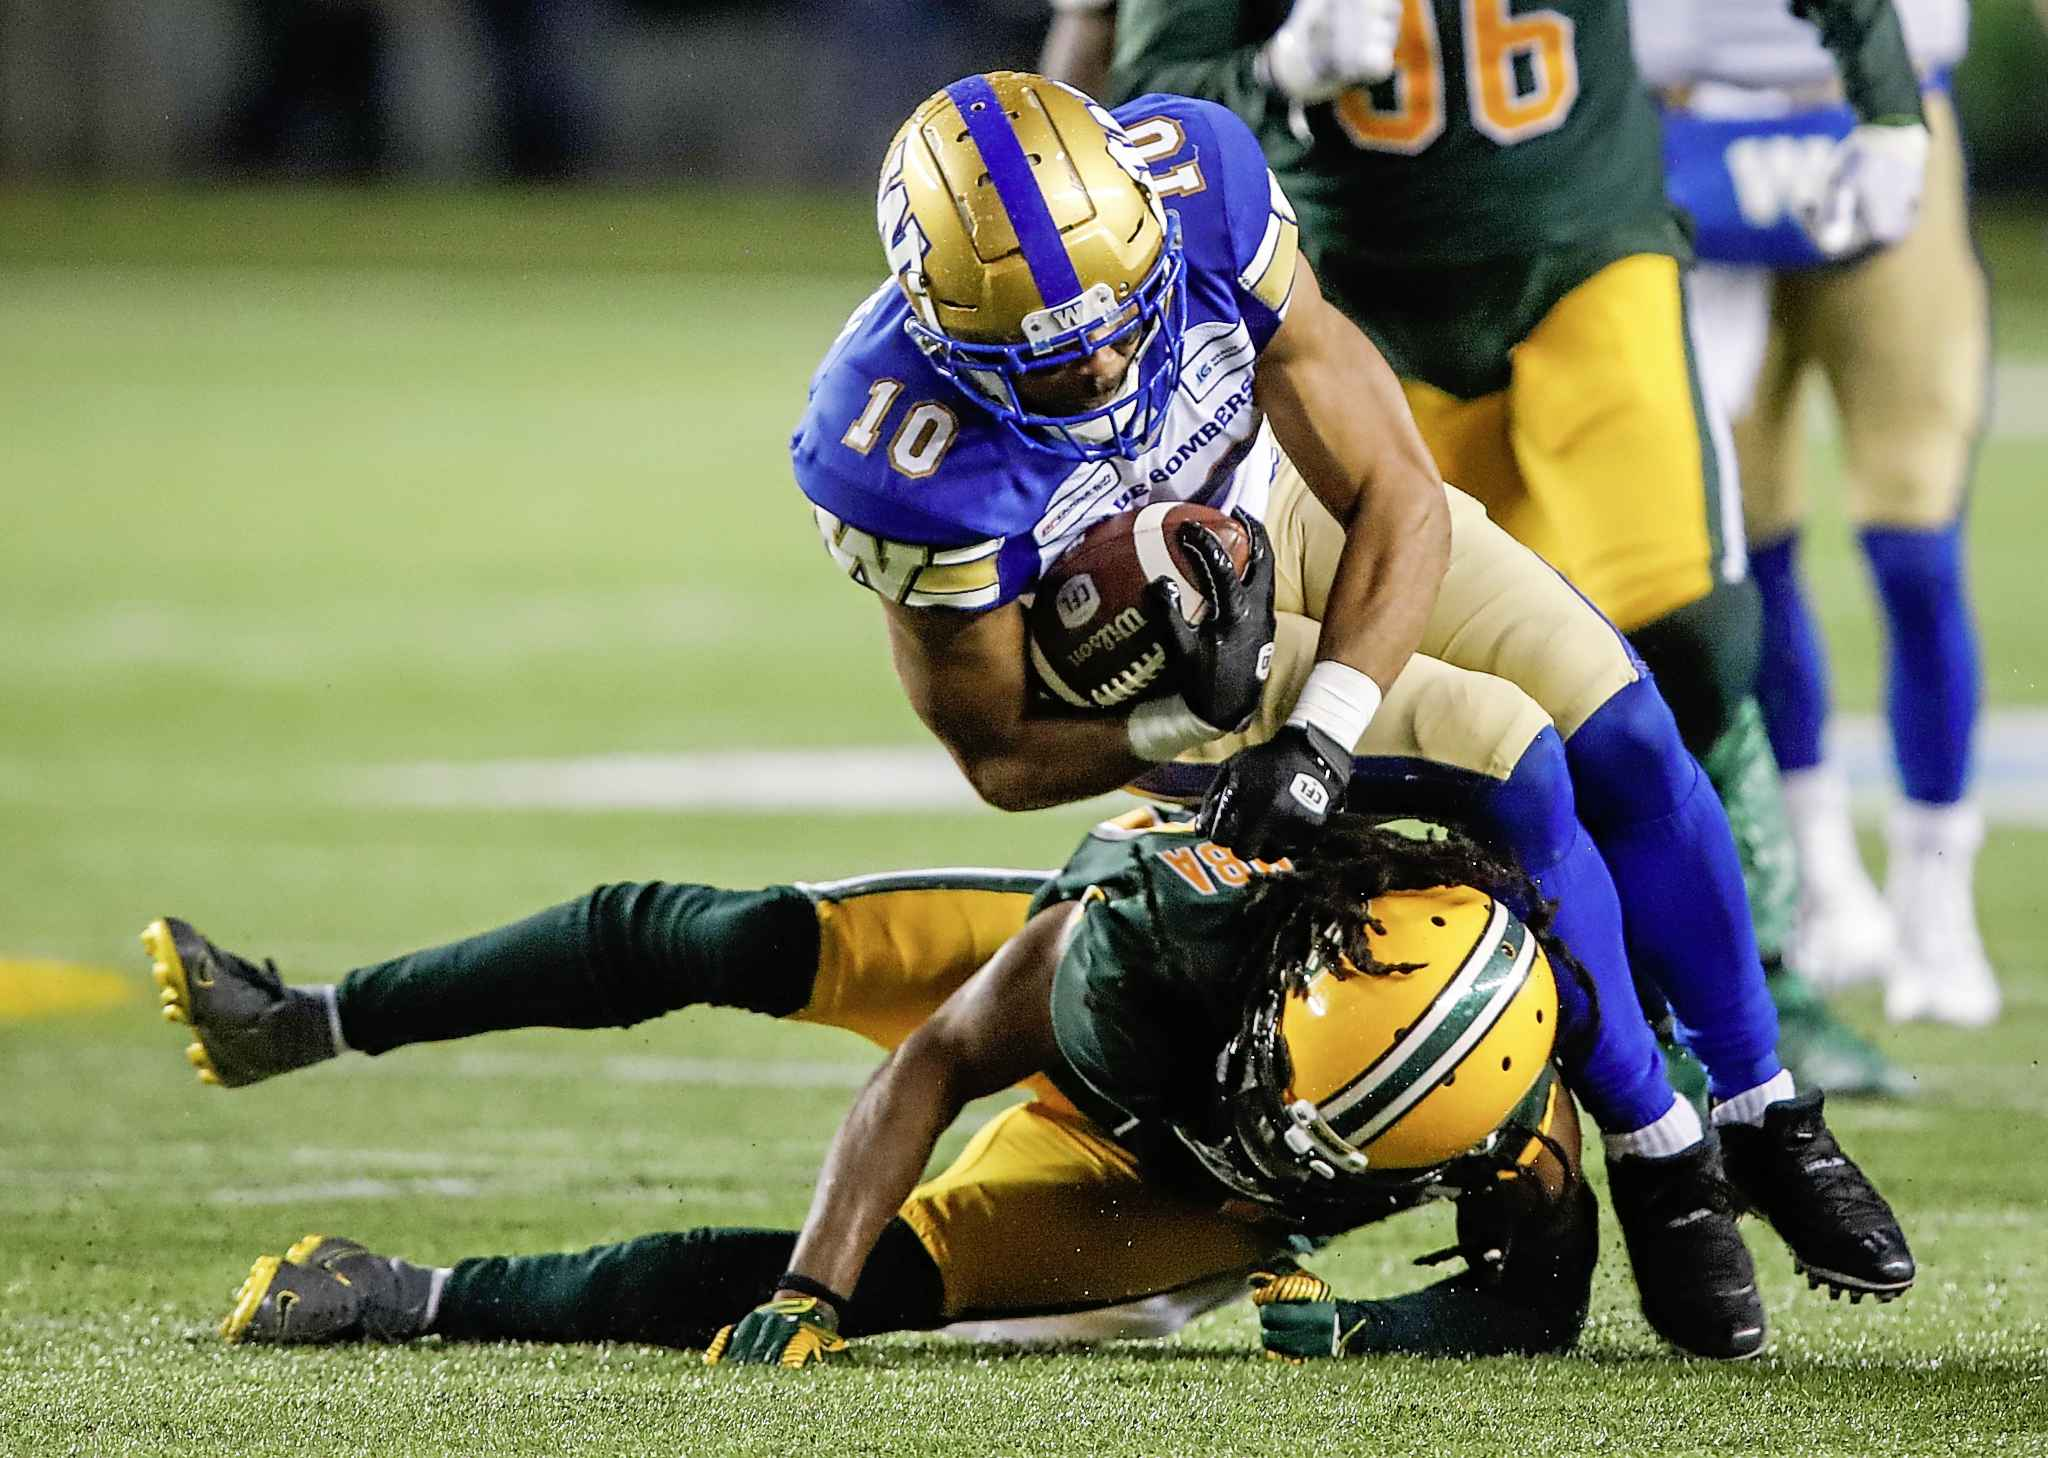 Winnipeg Blue Bombers' Nic Demski, right, is tackled by Edmonton Eskimos' Don Unamba during the second half.